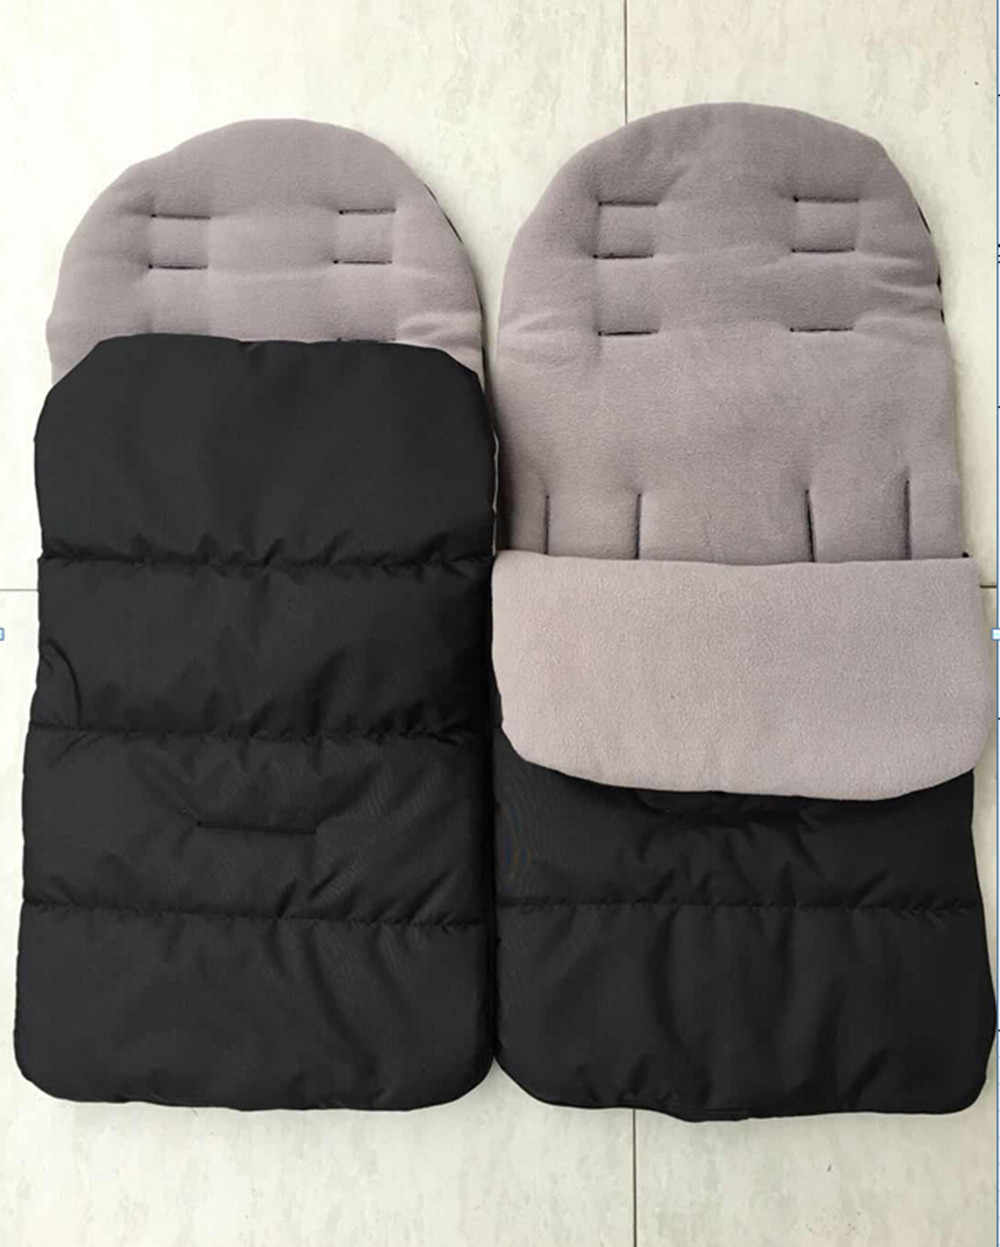 0-3T Baby Footmuff Sleep Bag Cosy Toes Apron Liner Buggy Pram Toddler Soft Cotton Blends Stroller Footmuff Winter Warm 2020 New